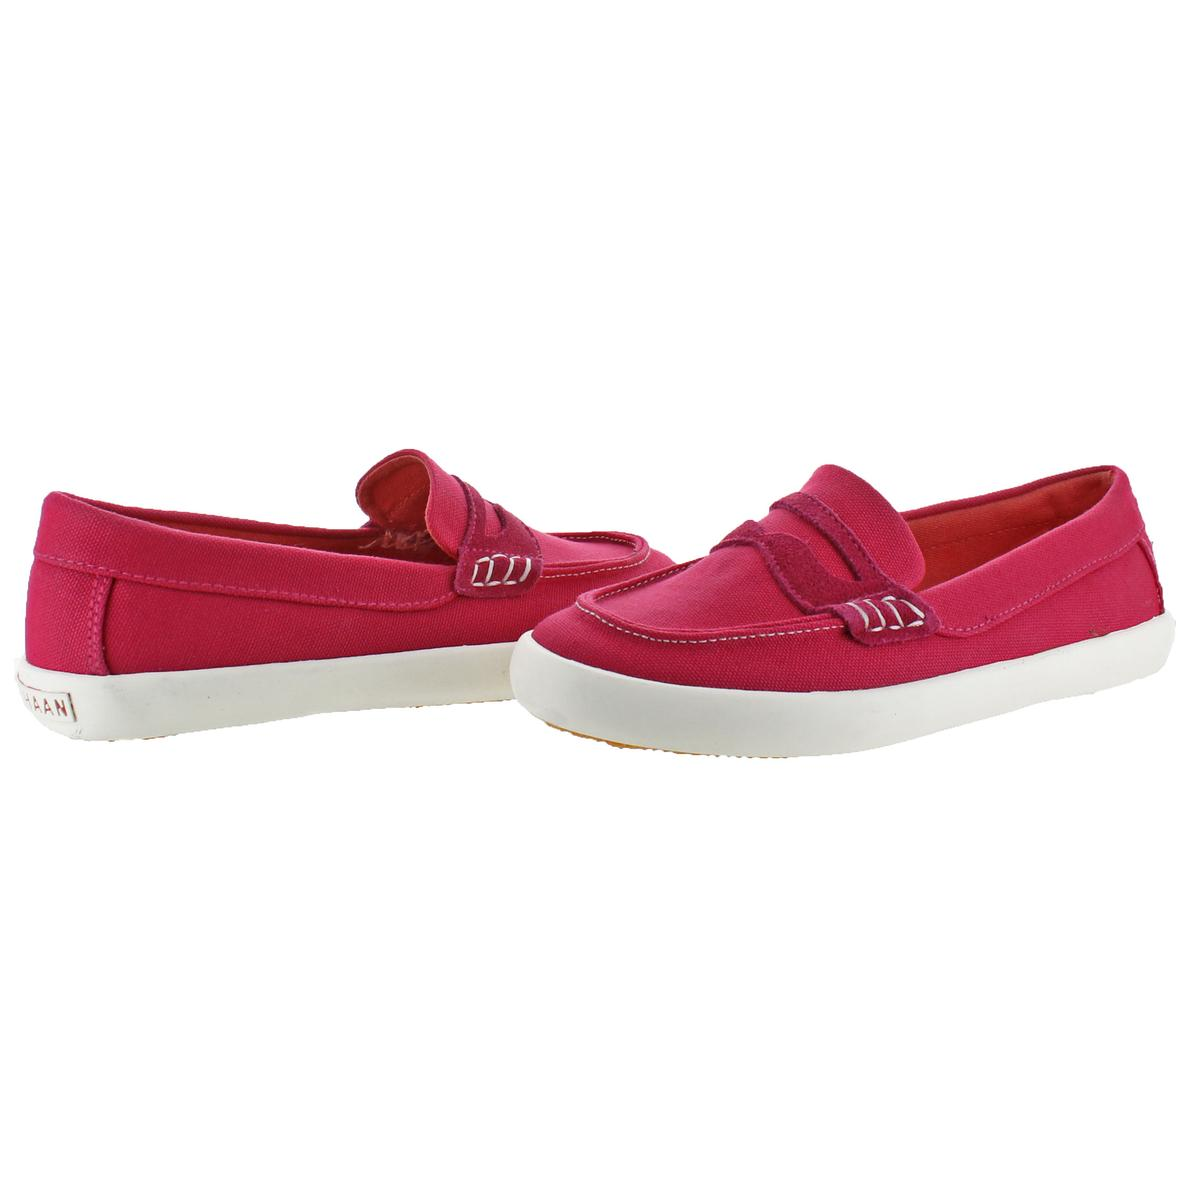 84fe7c38632 Cole Haan Pinch LTE Girls Penny Loafer Slip-On Flats Youth Low-Top ...